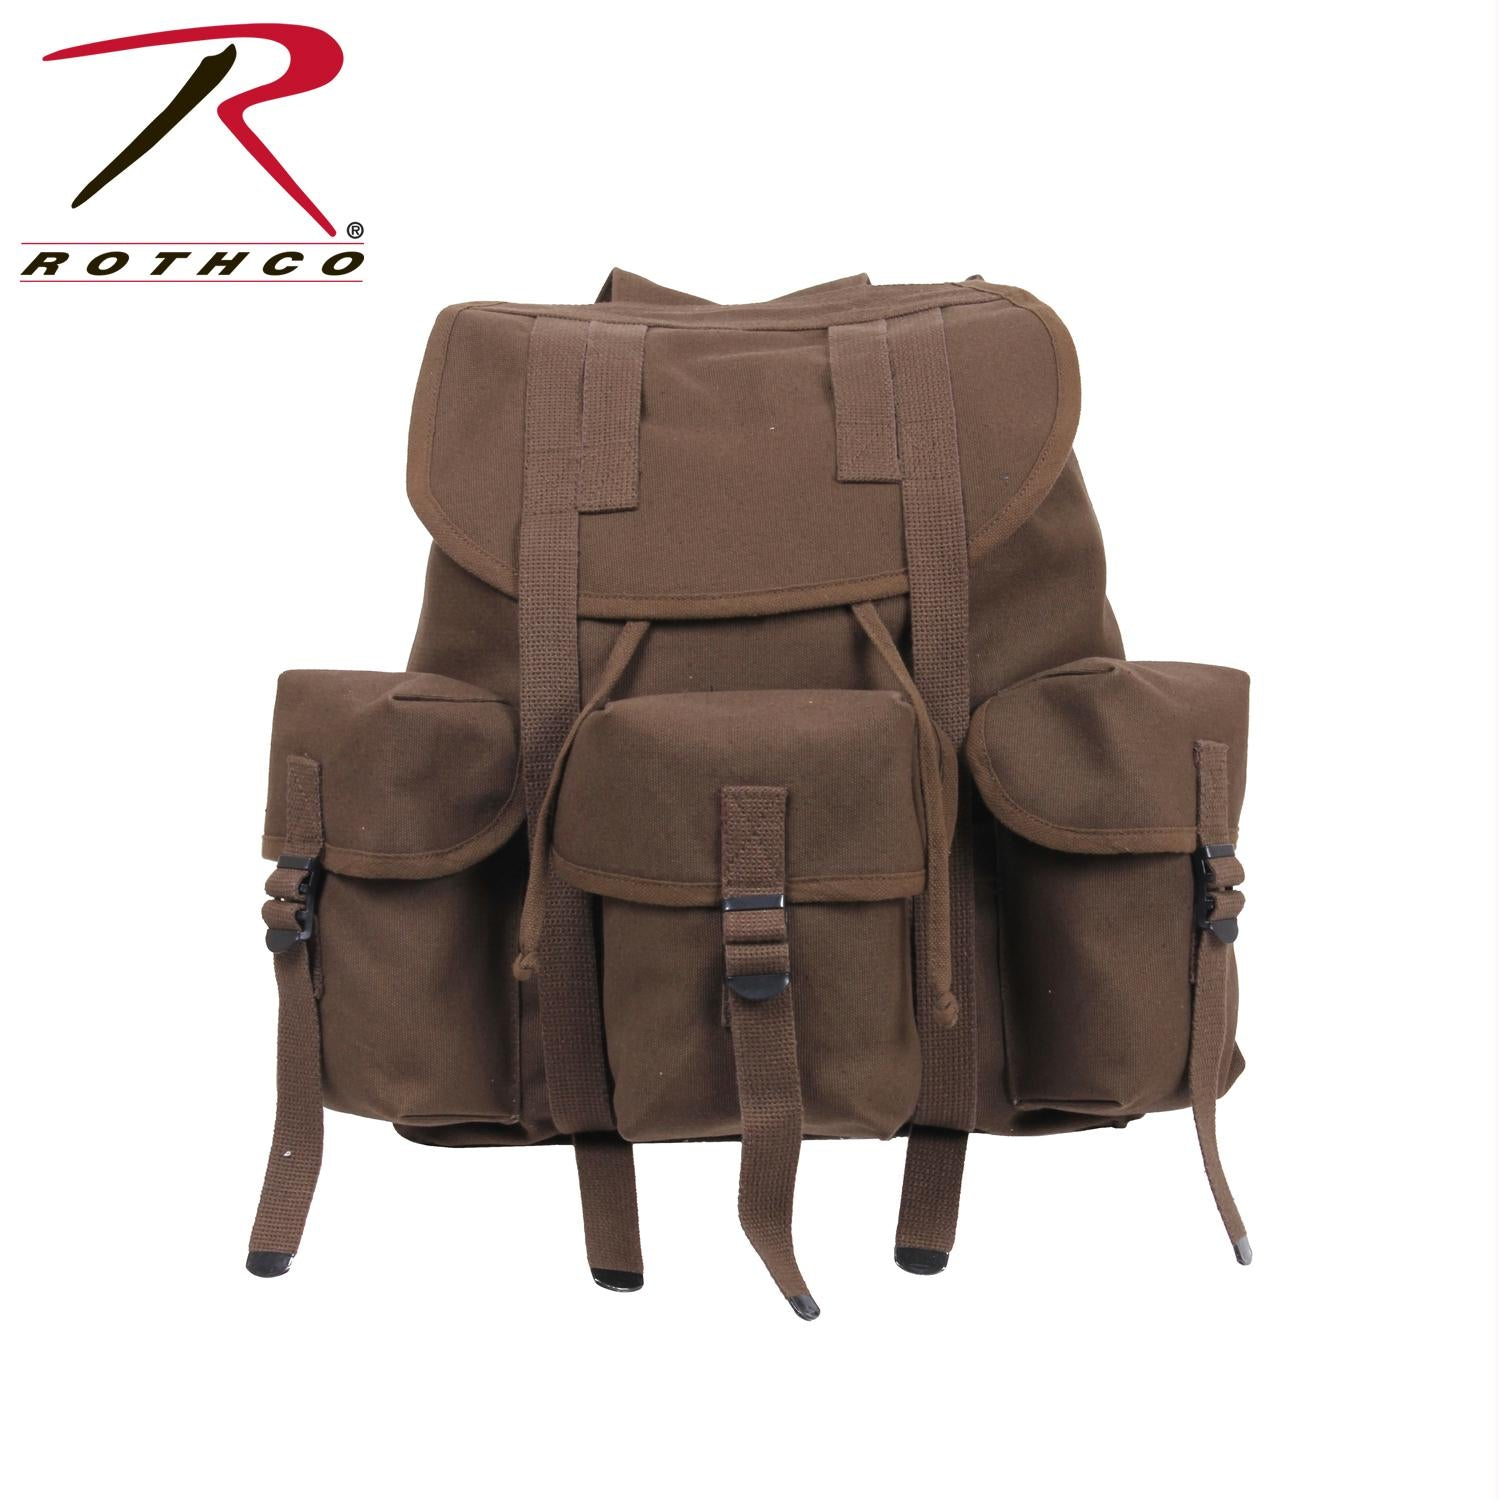 Rothco G.I. Type Heavyweight Mini Alice Pack - Earth Brown